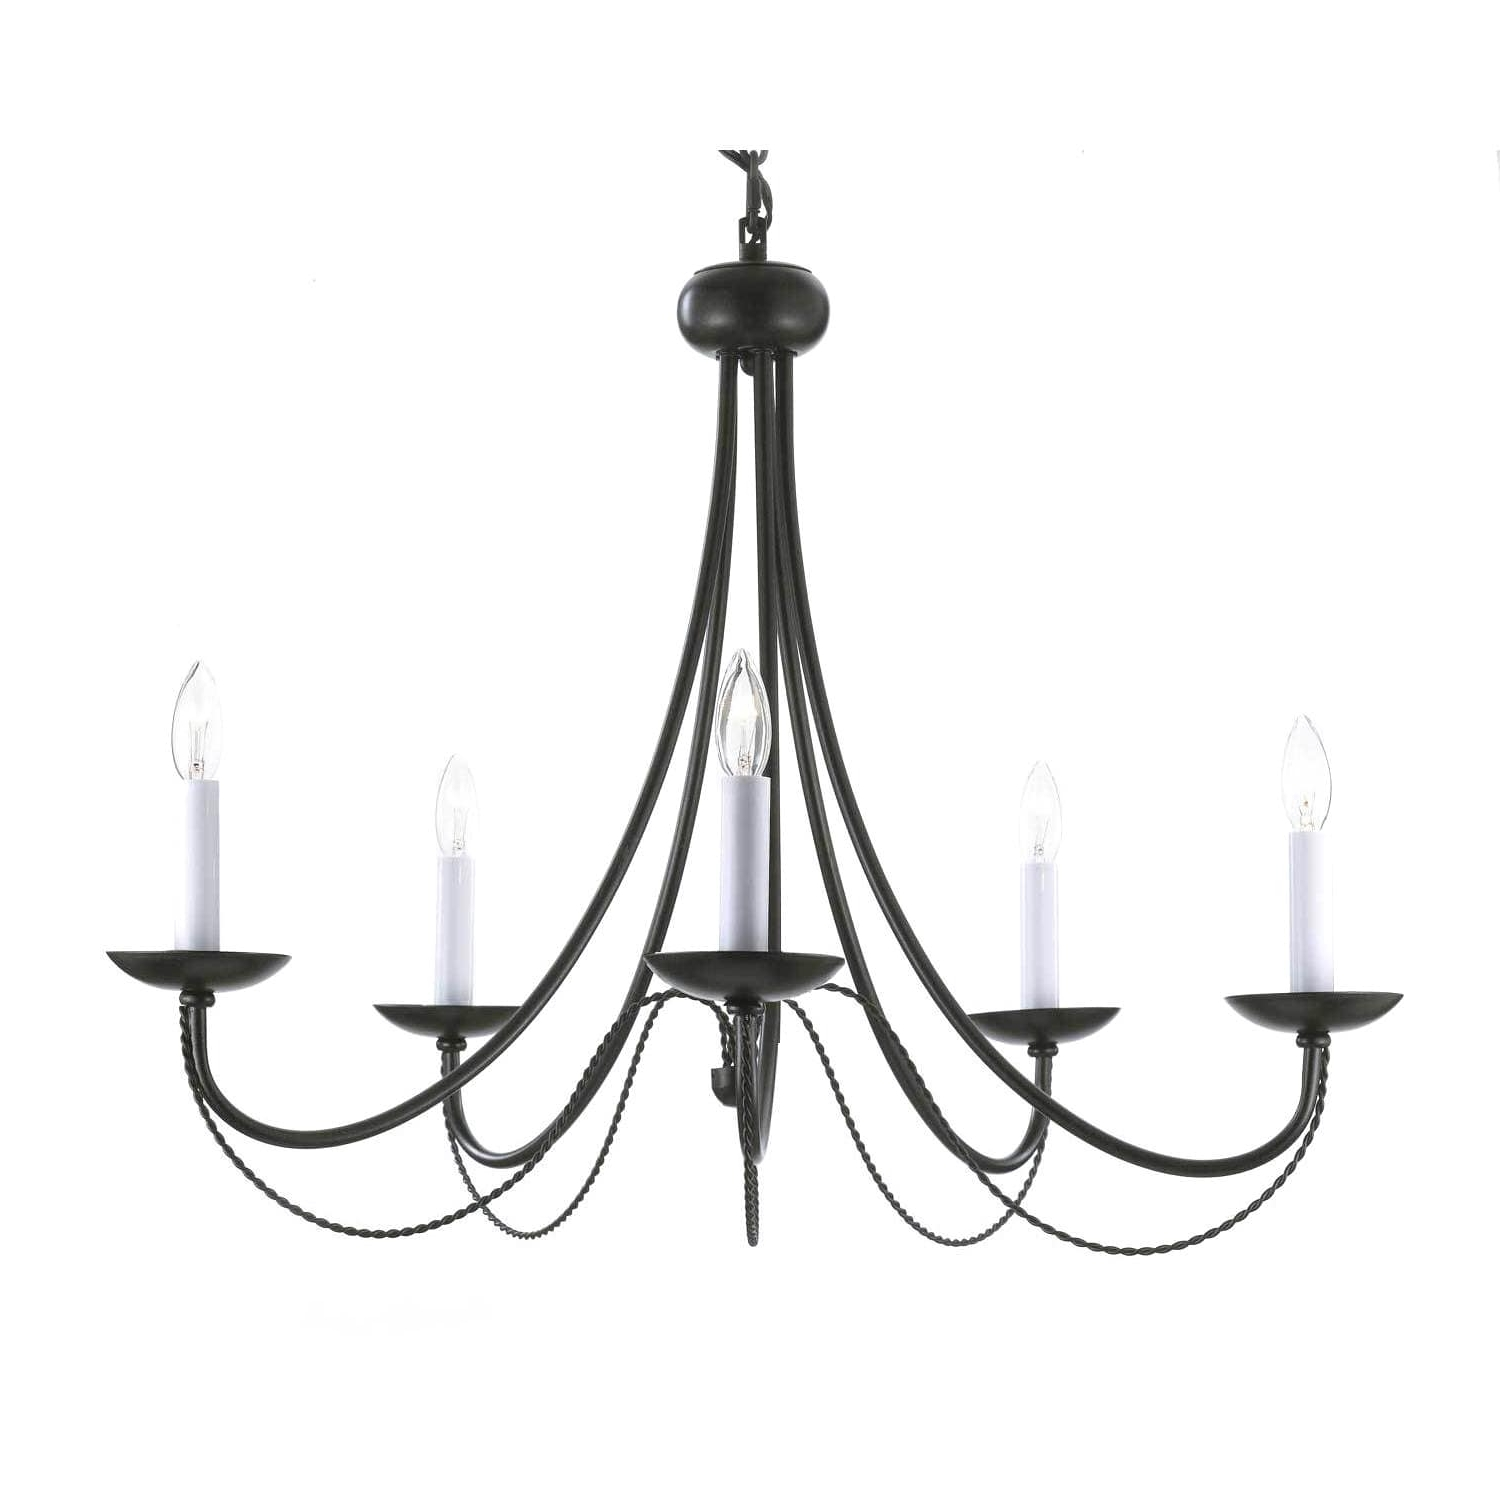 Trendy Gallery Versailles 5 Light Black Wrought Iron Chandelier – Free Intended For Wrought Iron Chandeliers (View 13 of 15)